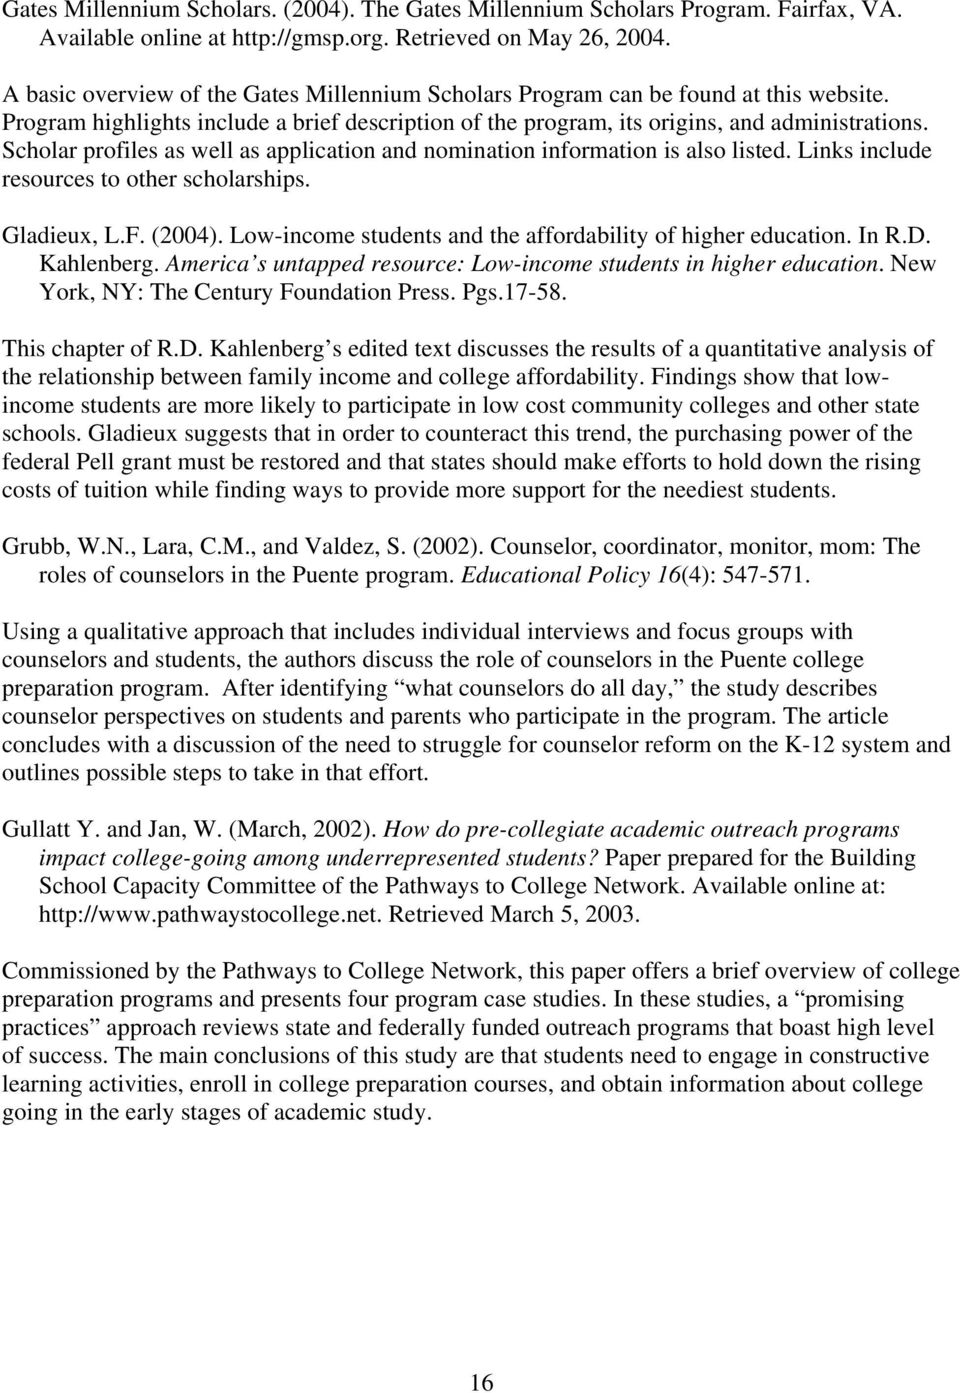 Scholar profiles as well as application and nomination information is also listed. Links include resources to other scholarships. Gladieux, L.F. (2004).